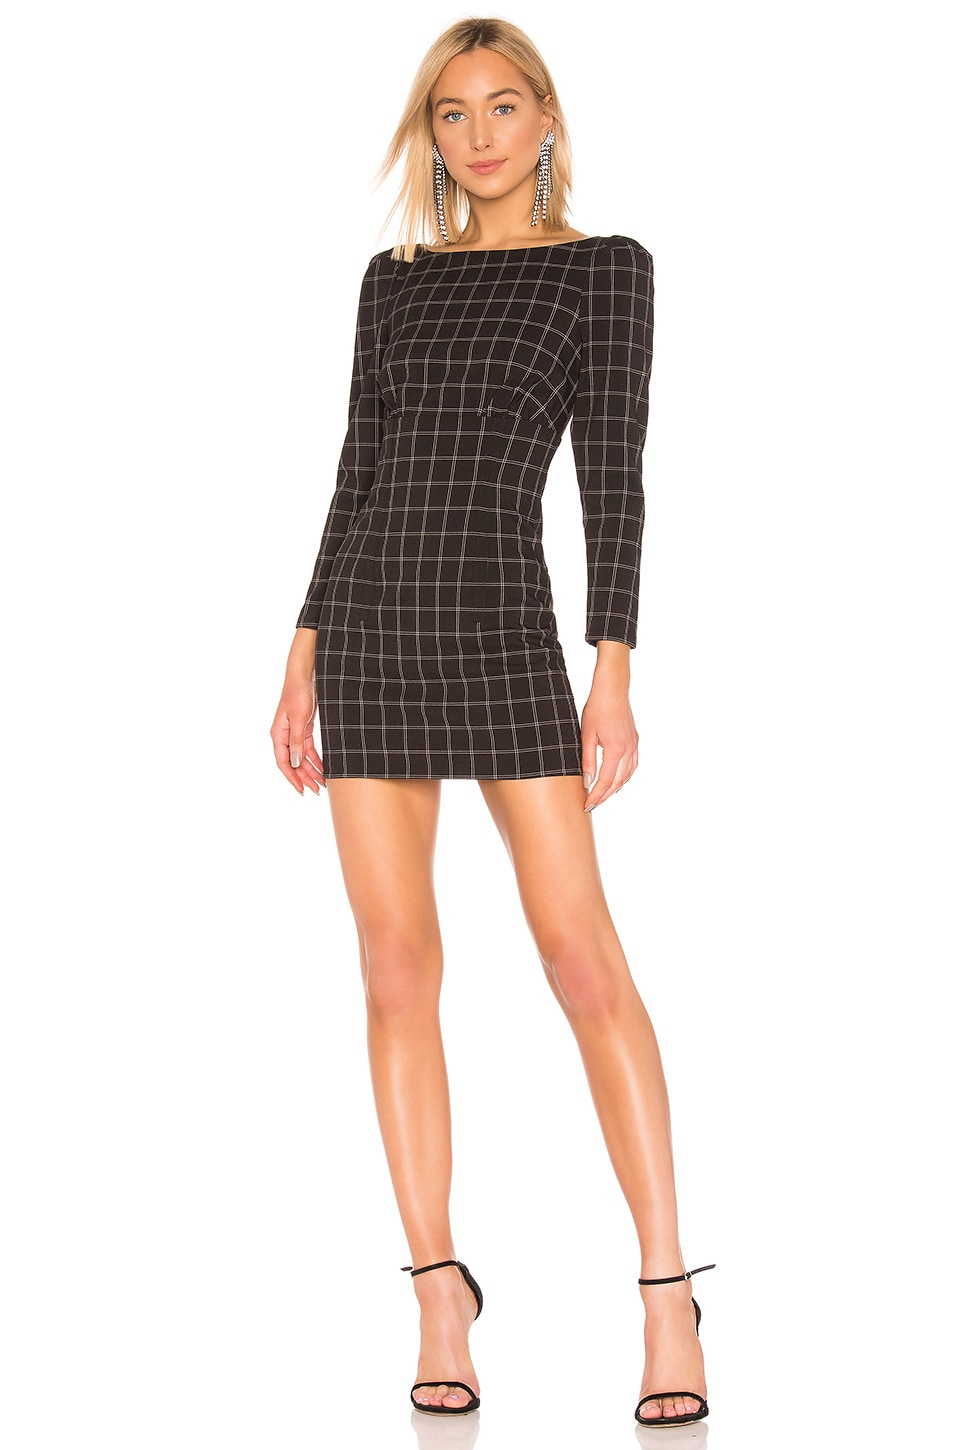 h:ours Shae Dress in Black & White